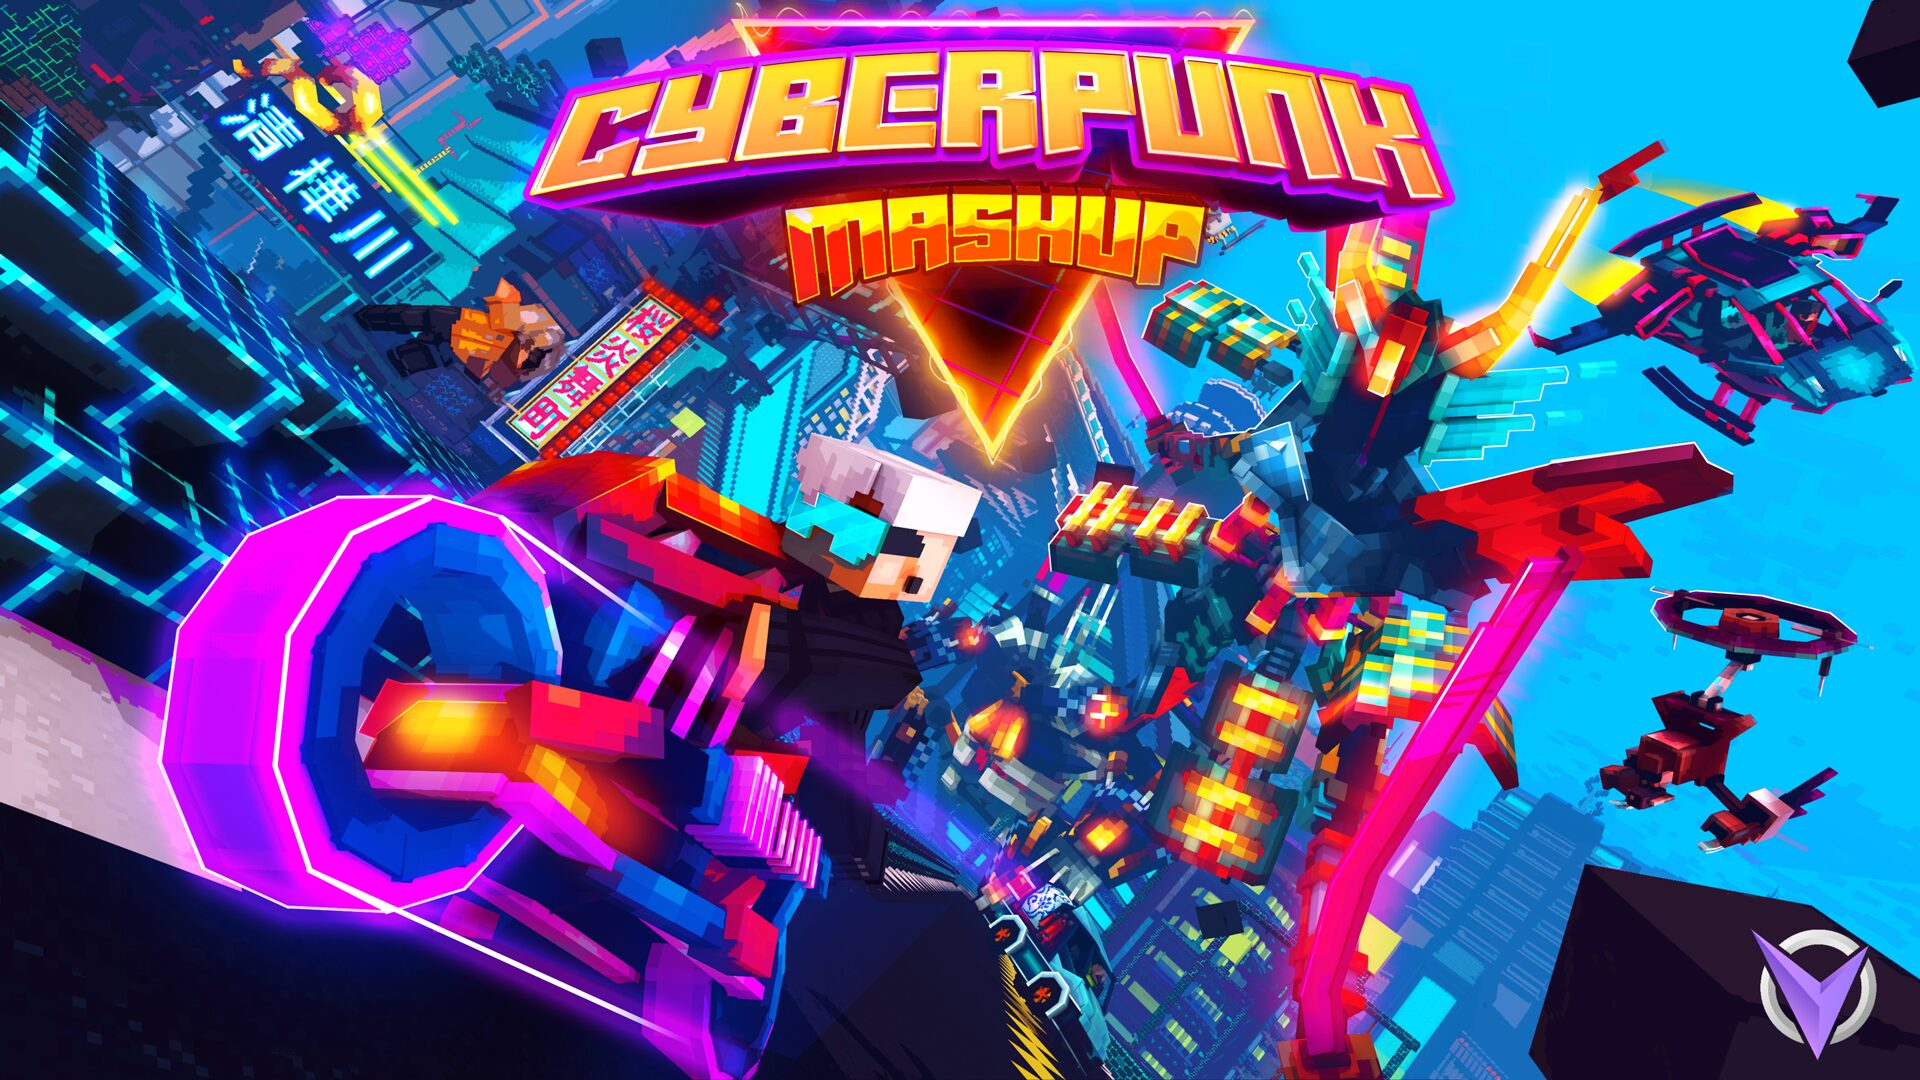 """Team Visionary on Twitter: """"Introducing Cyberpunk Mashup! Robots and augments have become the norm in this cyberpunk reality. The city has become the playground for the robot elites. Take the journey into"""